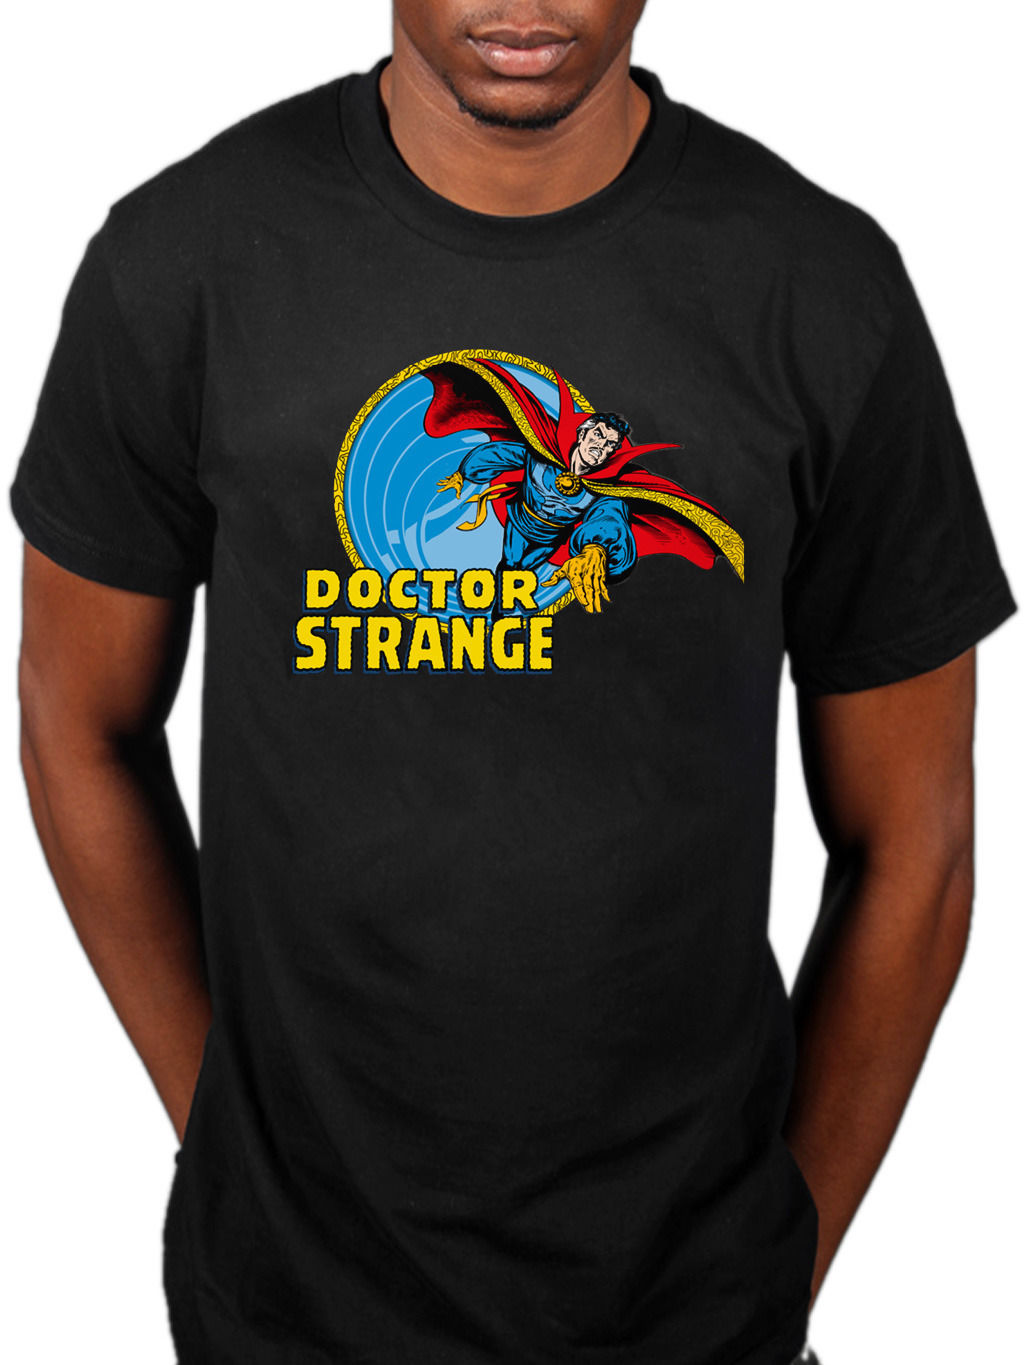 OFFICIAL MARVEL COMICS DOCTOR STRANGE VORTEX T-shirt Tales NUOVO Merchandise